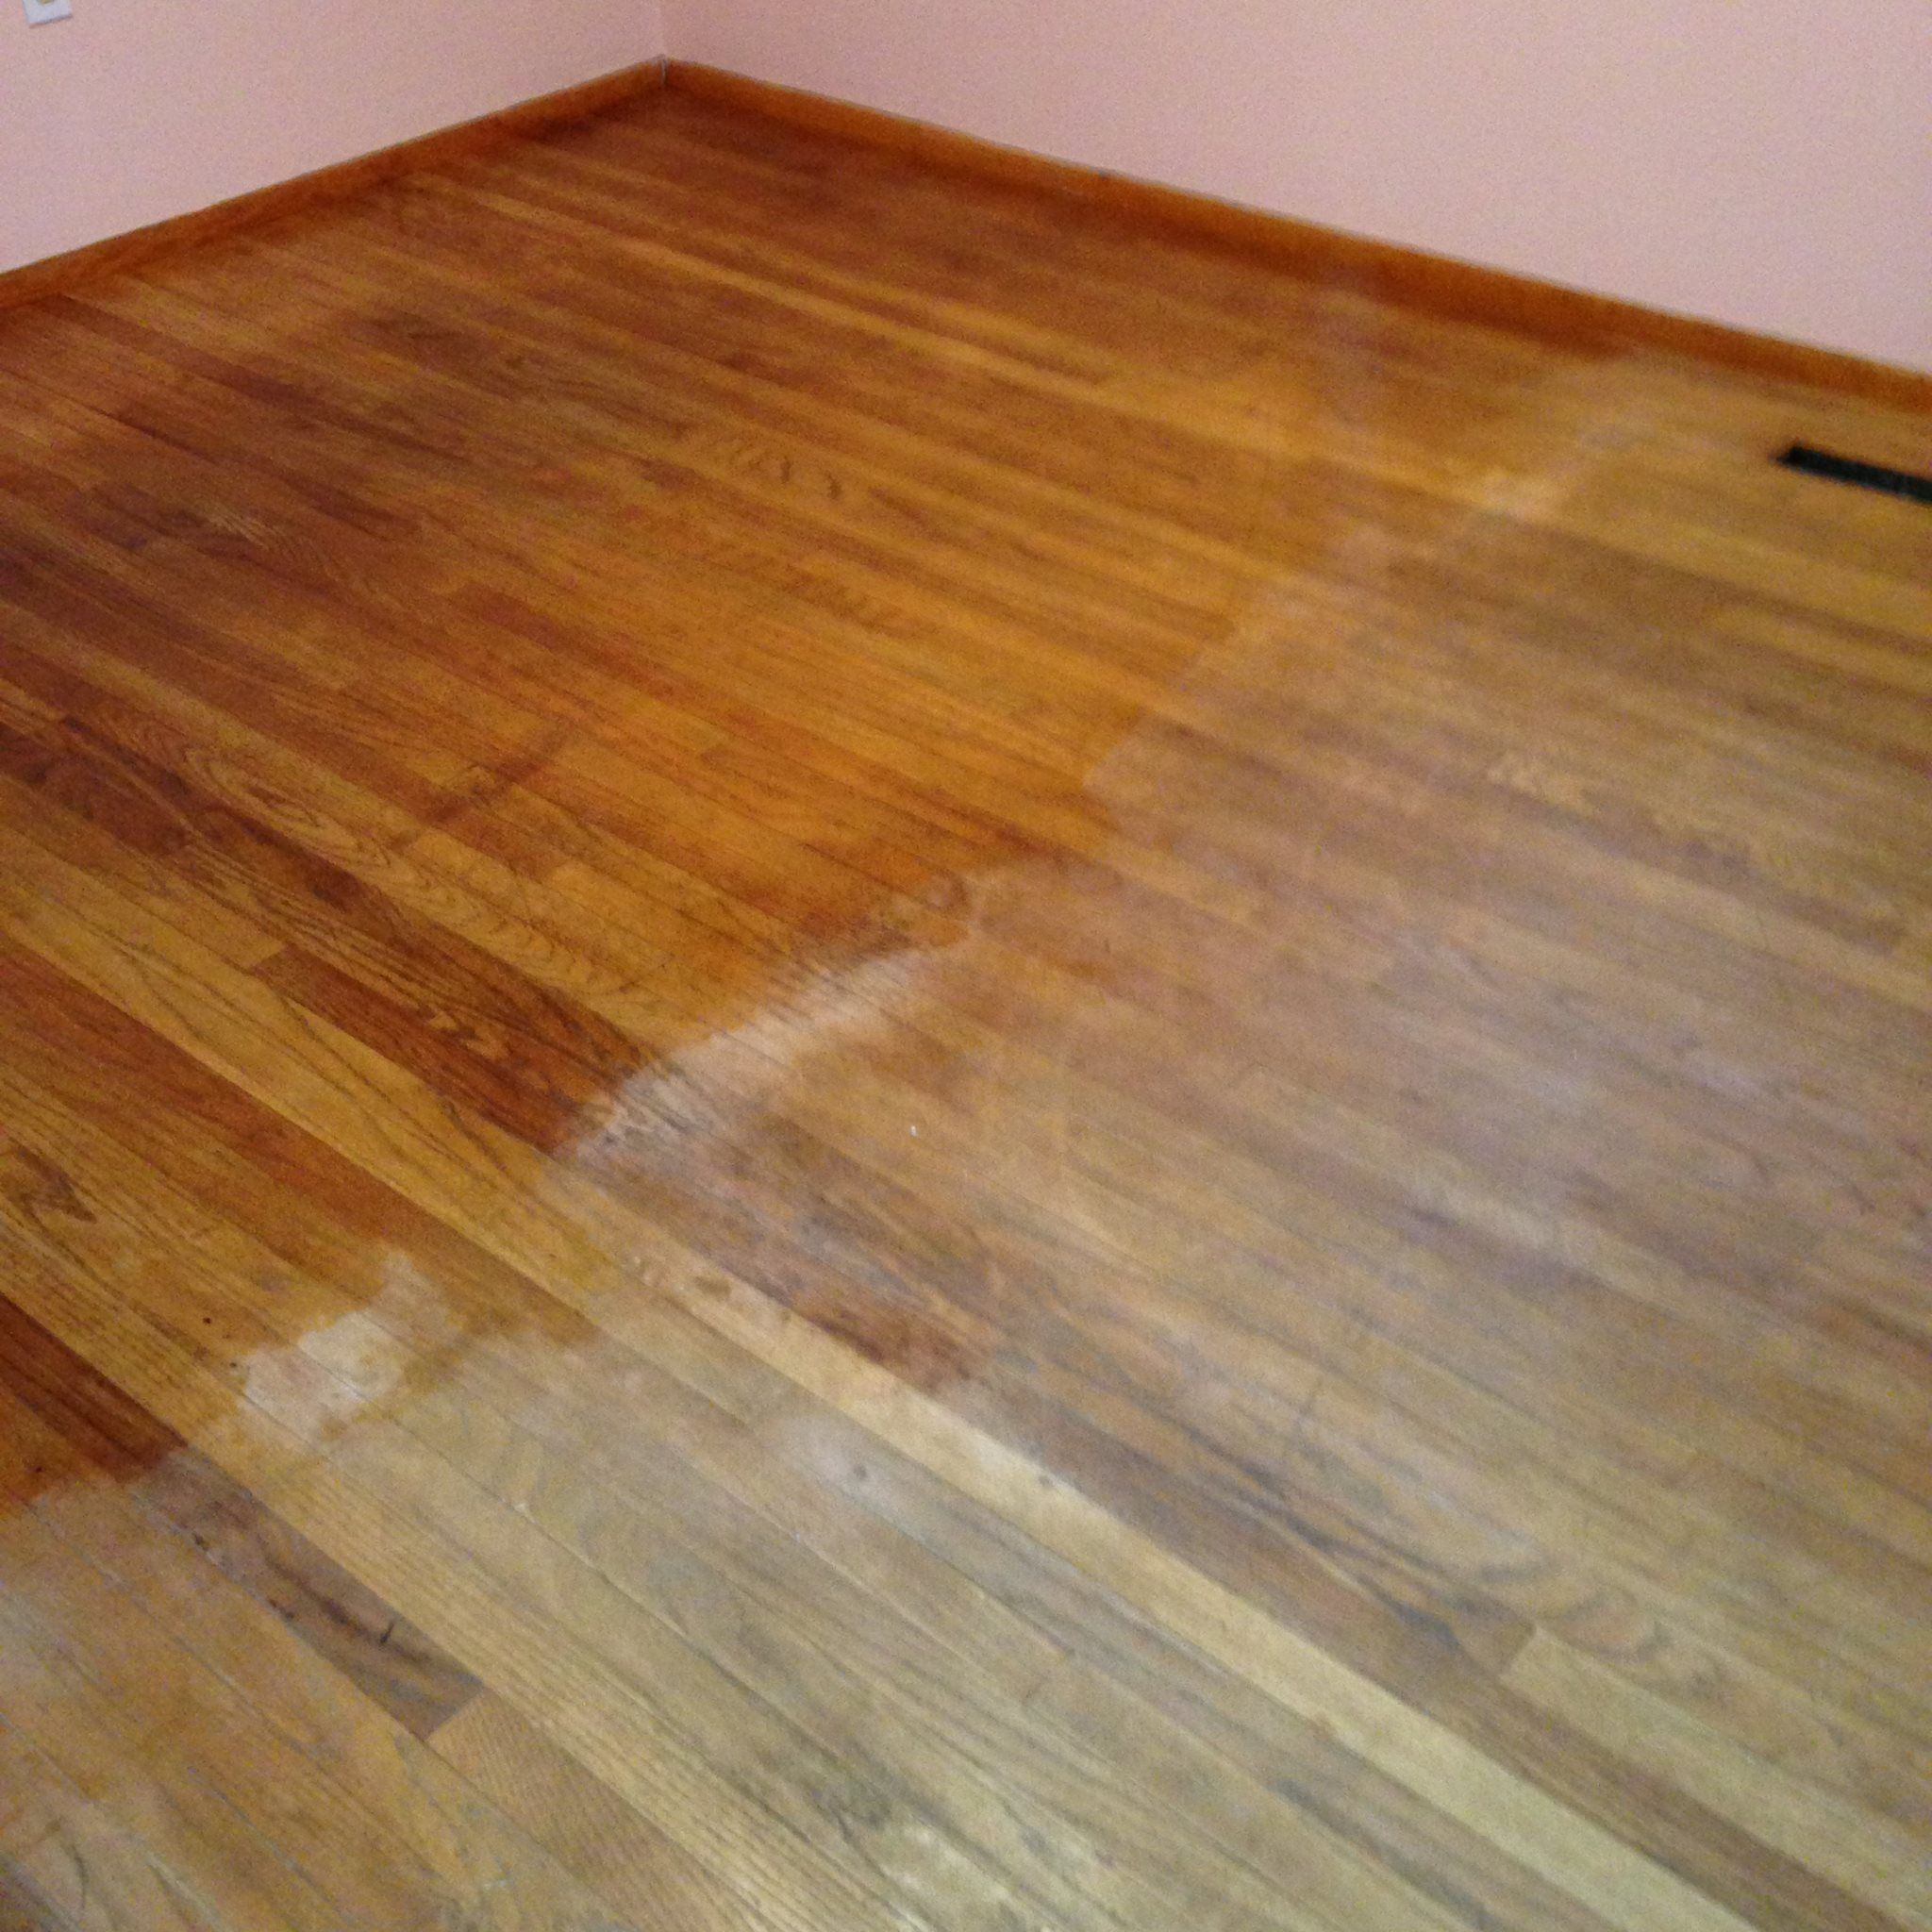 looking using big floors guide you correctly wood good hardwood if a products proper keep they clean care kitchen of with simple the can posts techno decades faq for floor last taking right to as new and